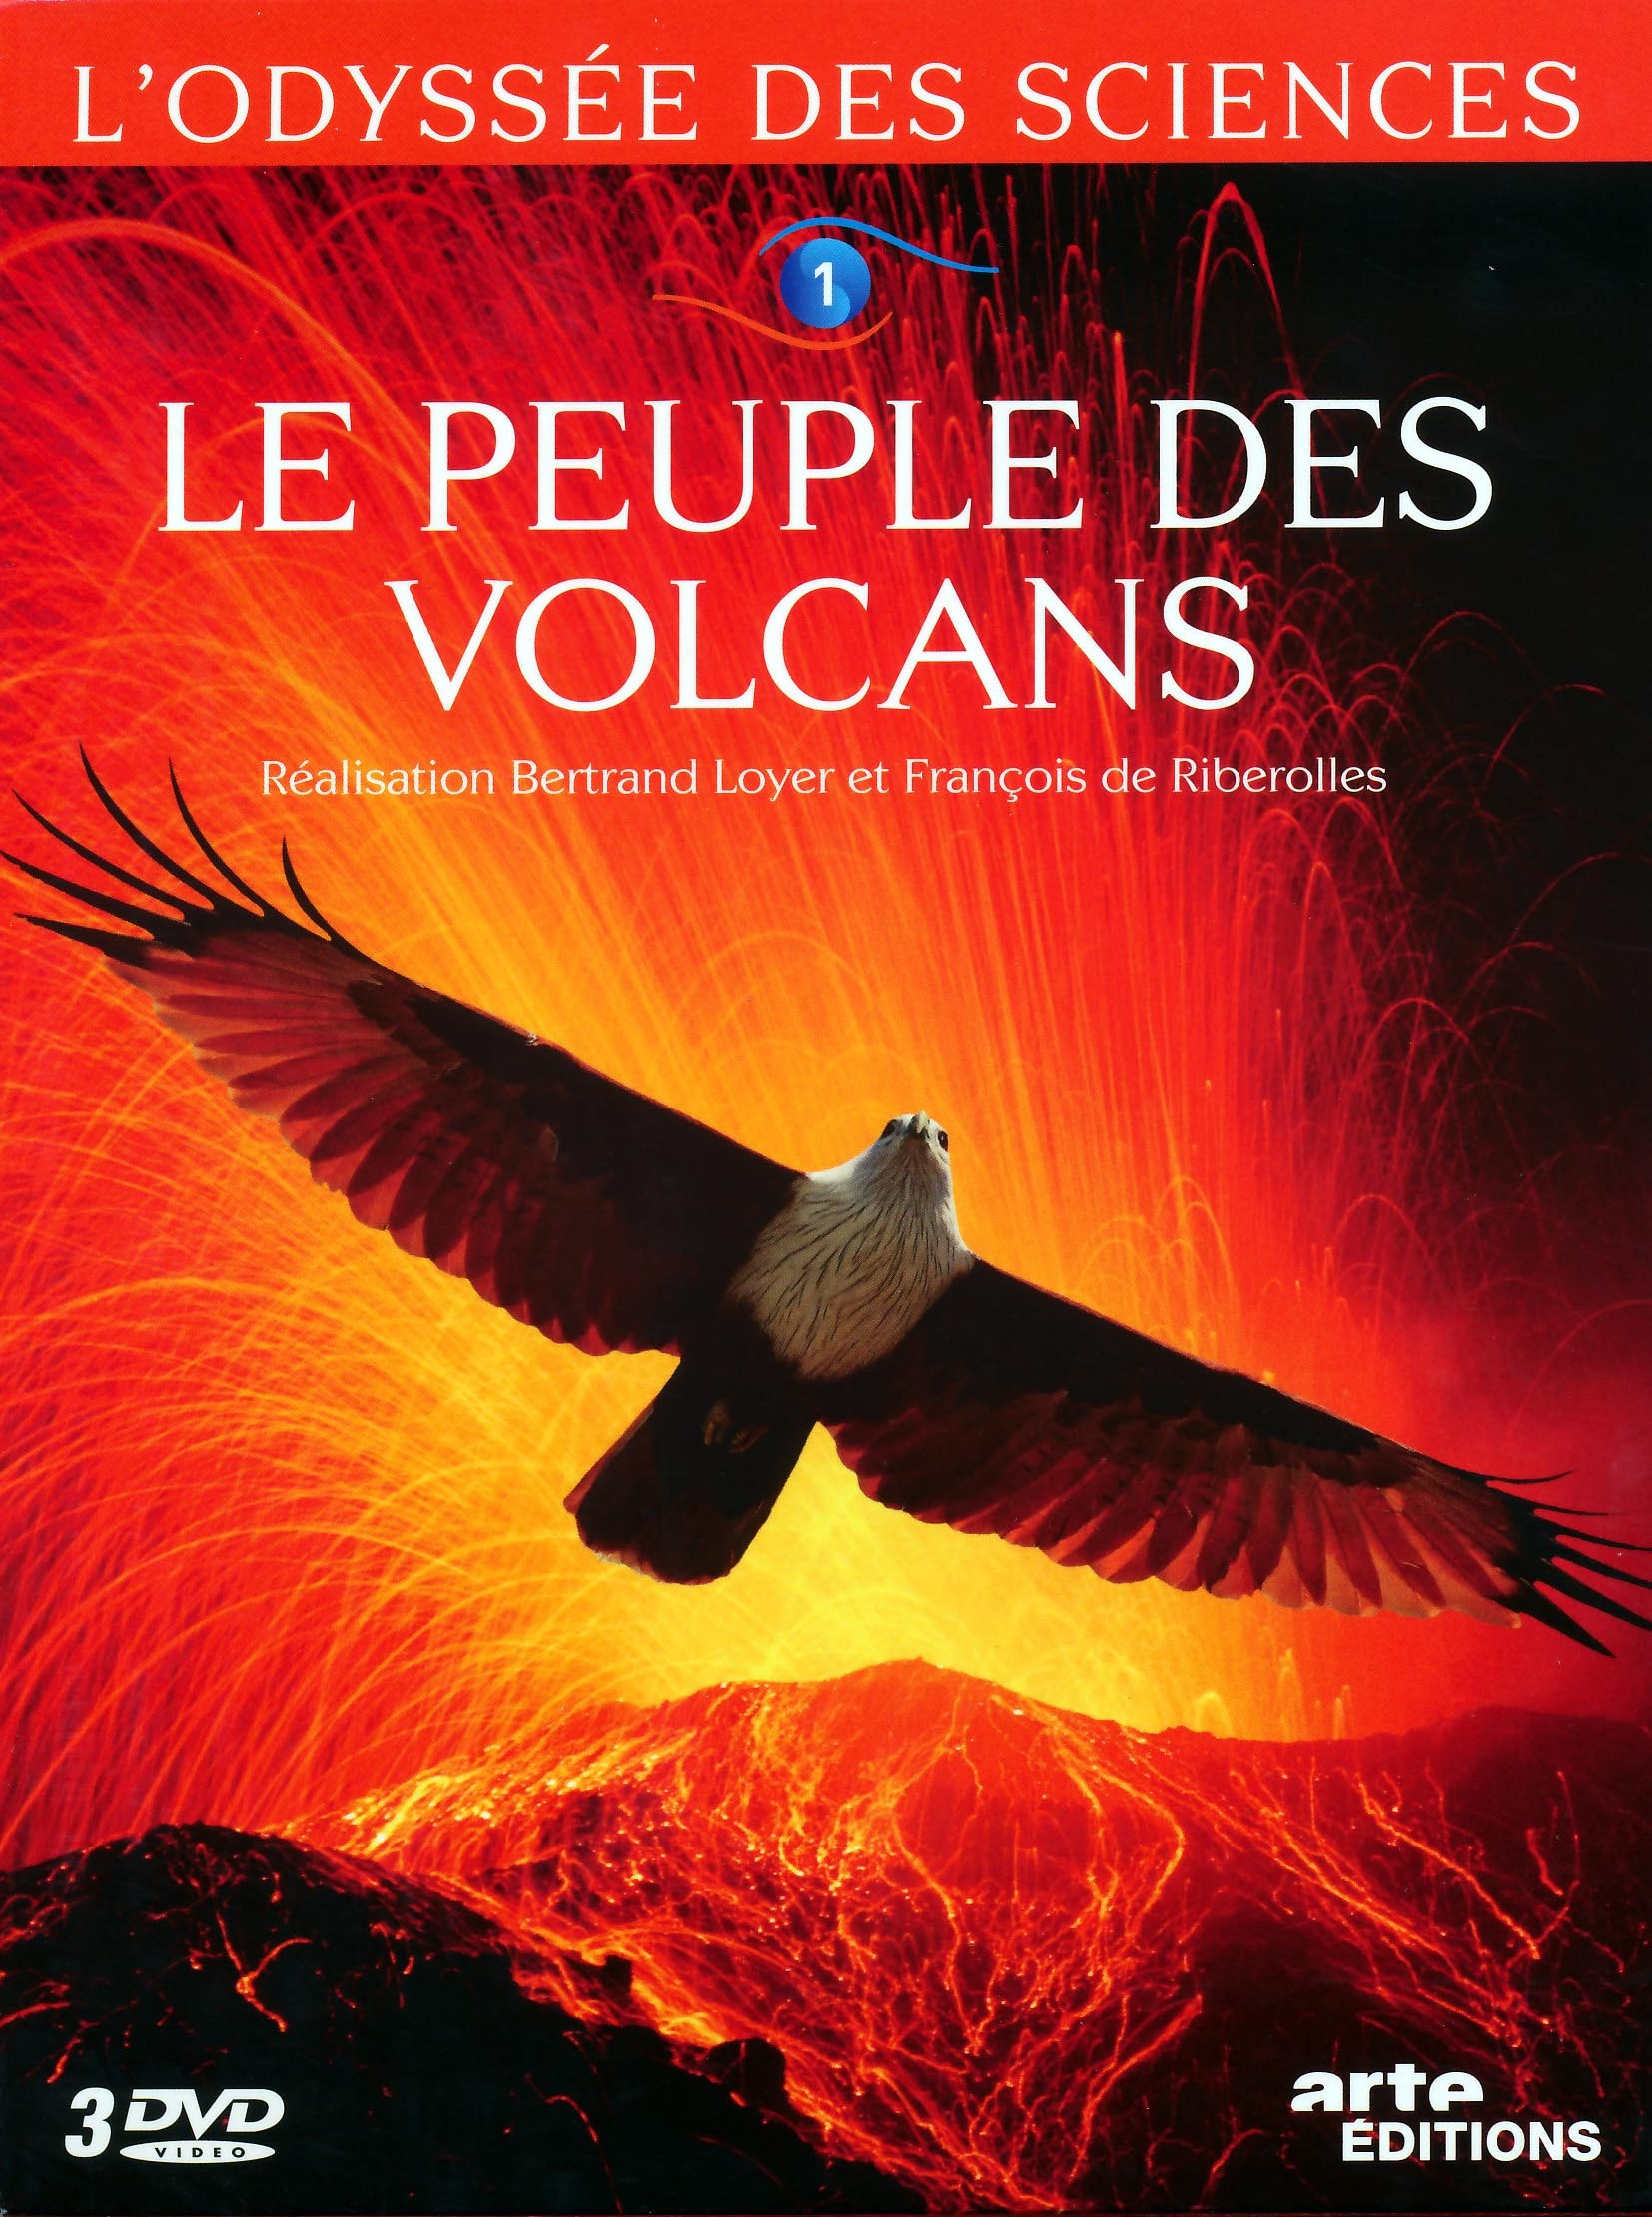 PEUPLE DES VOLCANS - ODYSSEE DES SCIENCES V1 - 2 DVD